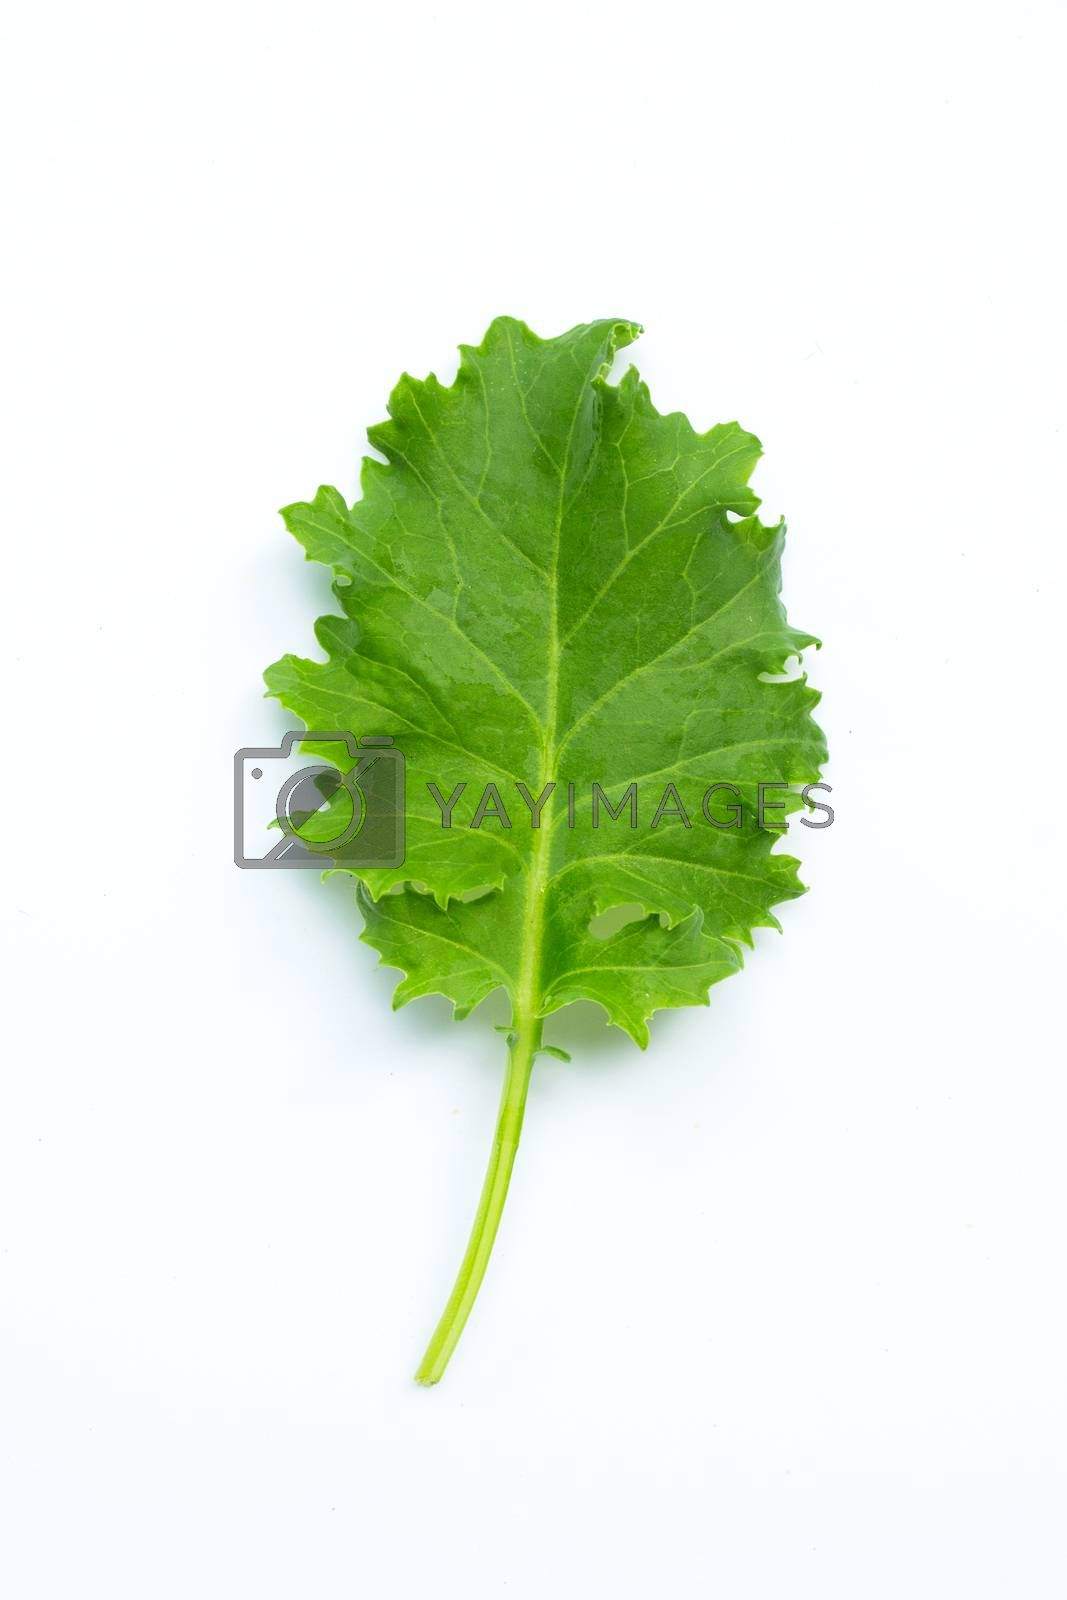 Kale leaf on white background. Top view